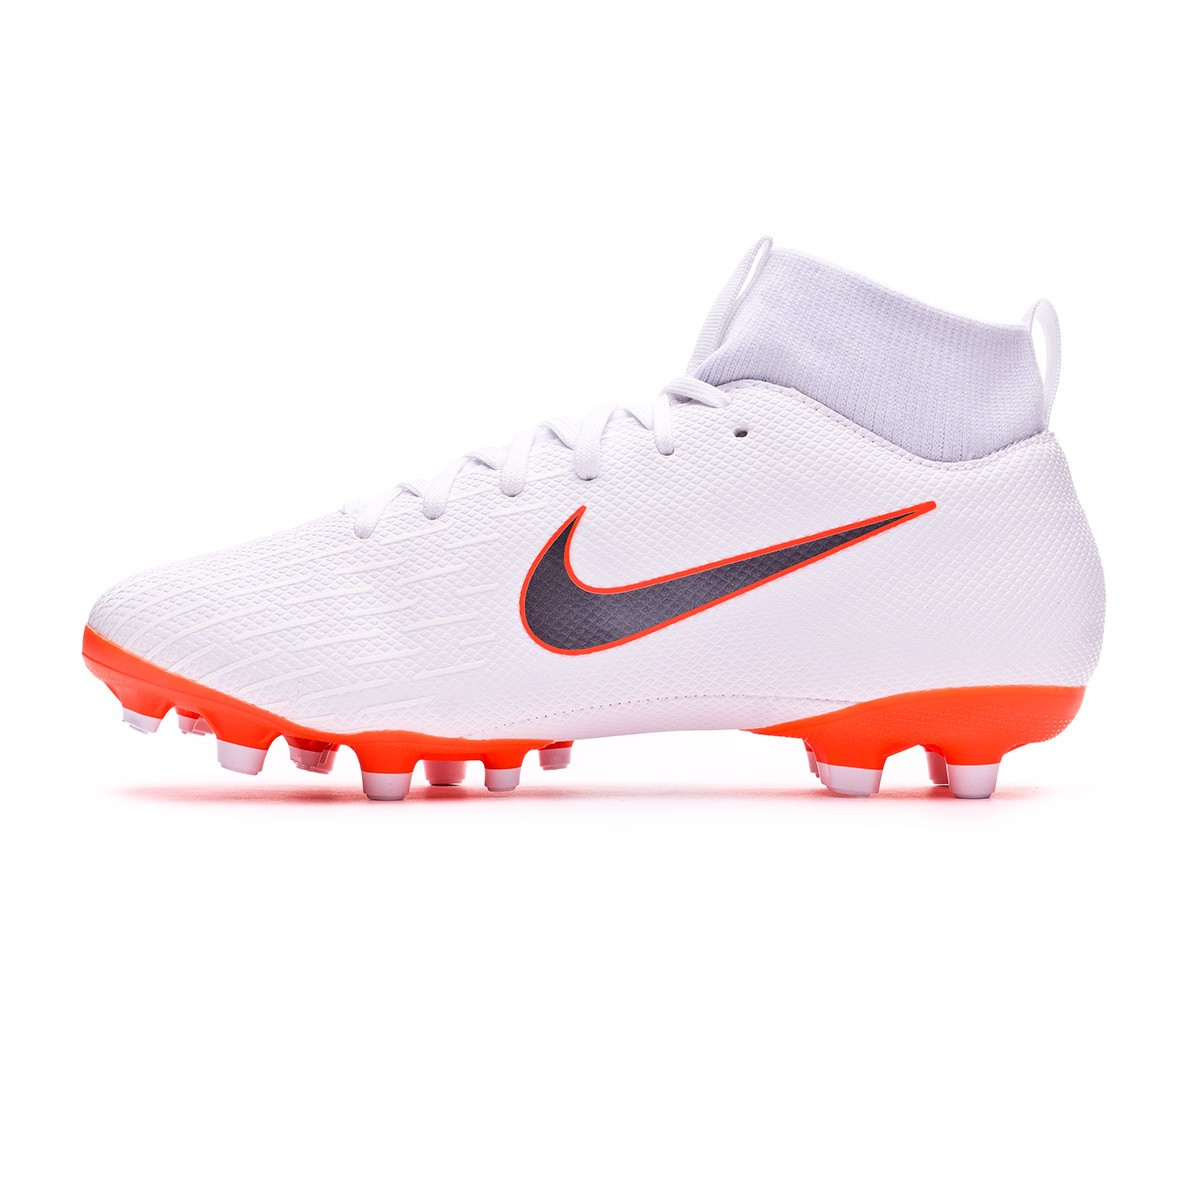 084ec2895386 Football Boots Nike Kids Mercurial Superfly VI Academy GS MG White-Metallic  cool grey-Total orange - Tienda de fútbol Fútbol Emotion